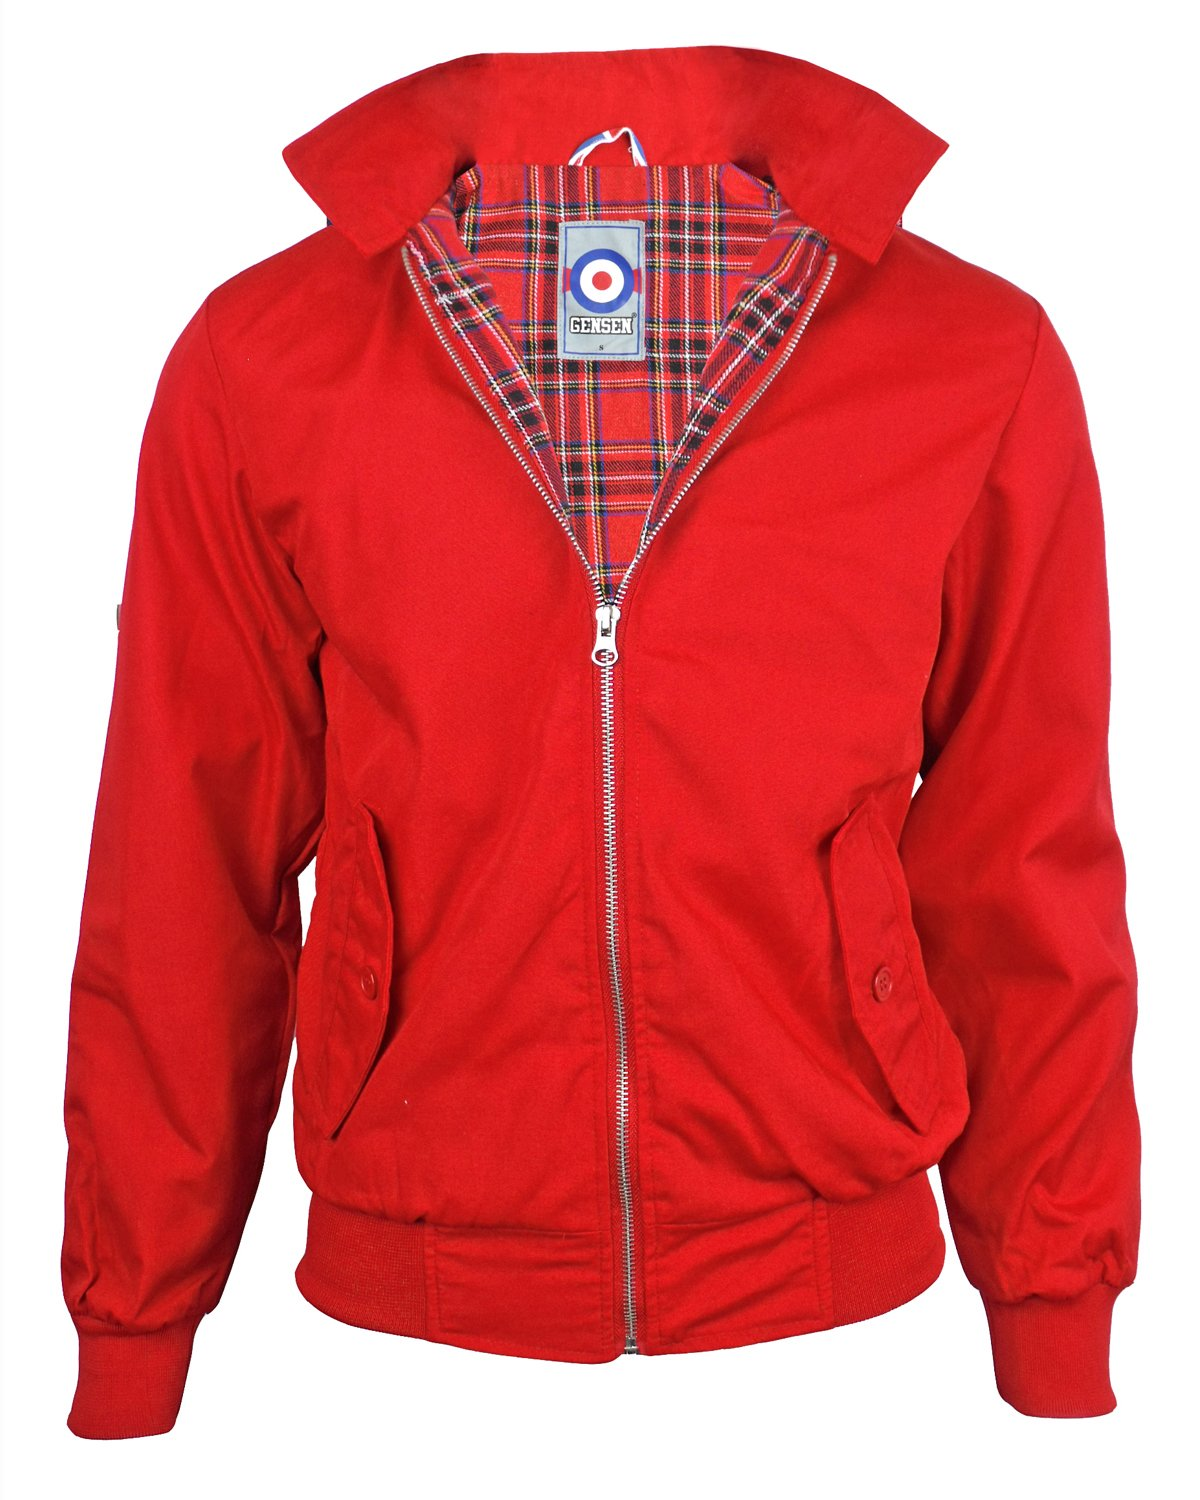 Gensen Men's Harrington Mod Jacket Button Collar JD Harrington